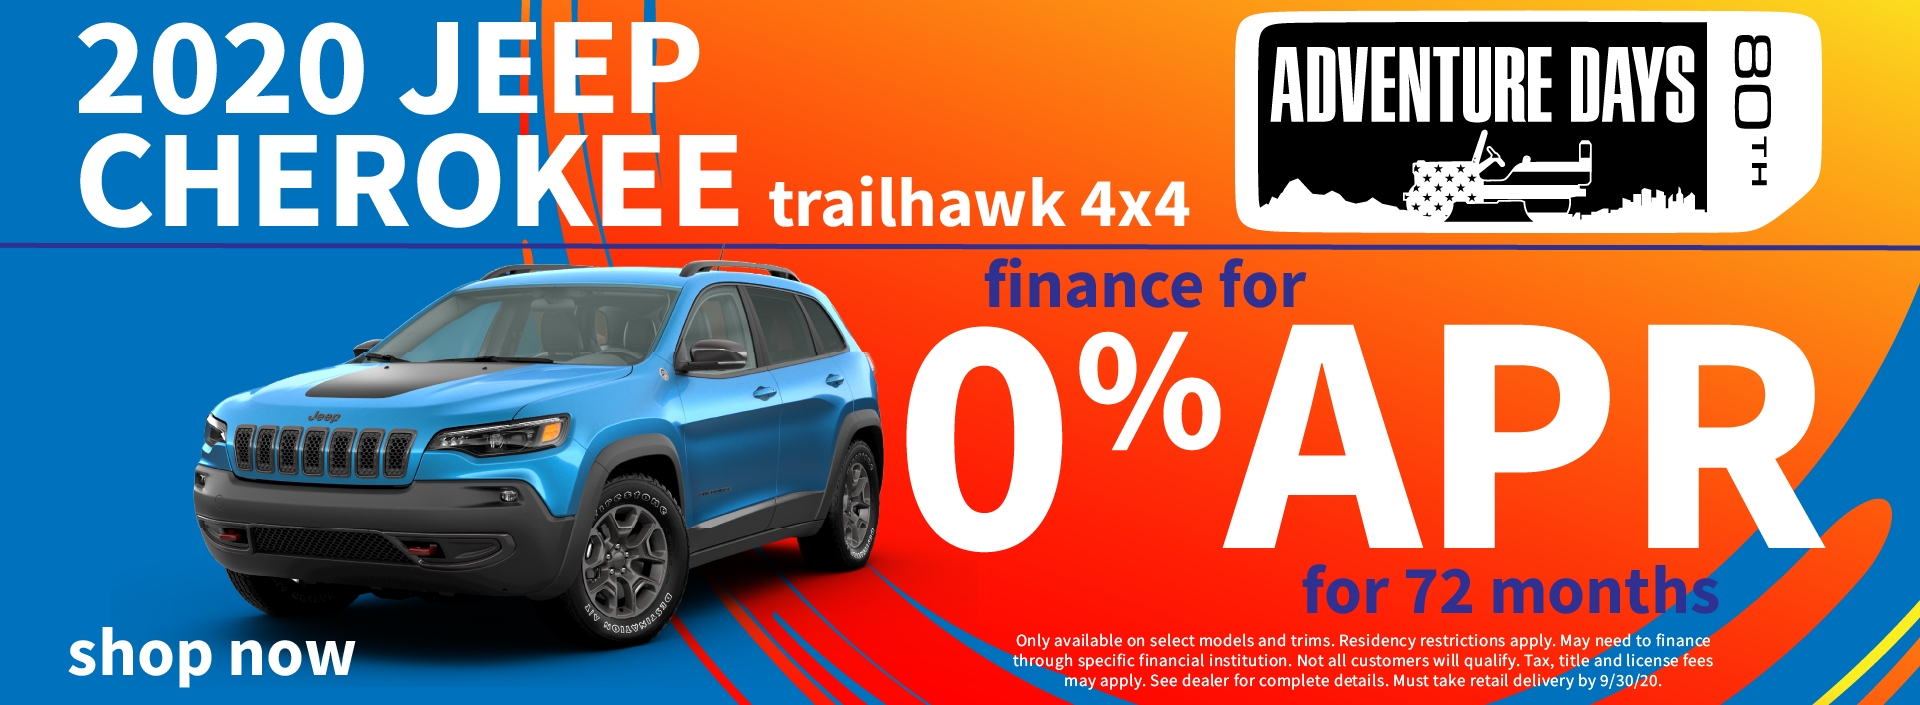 2020 Jeep Cherokee Finance Special